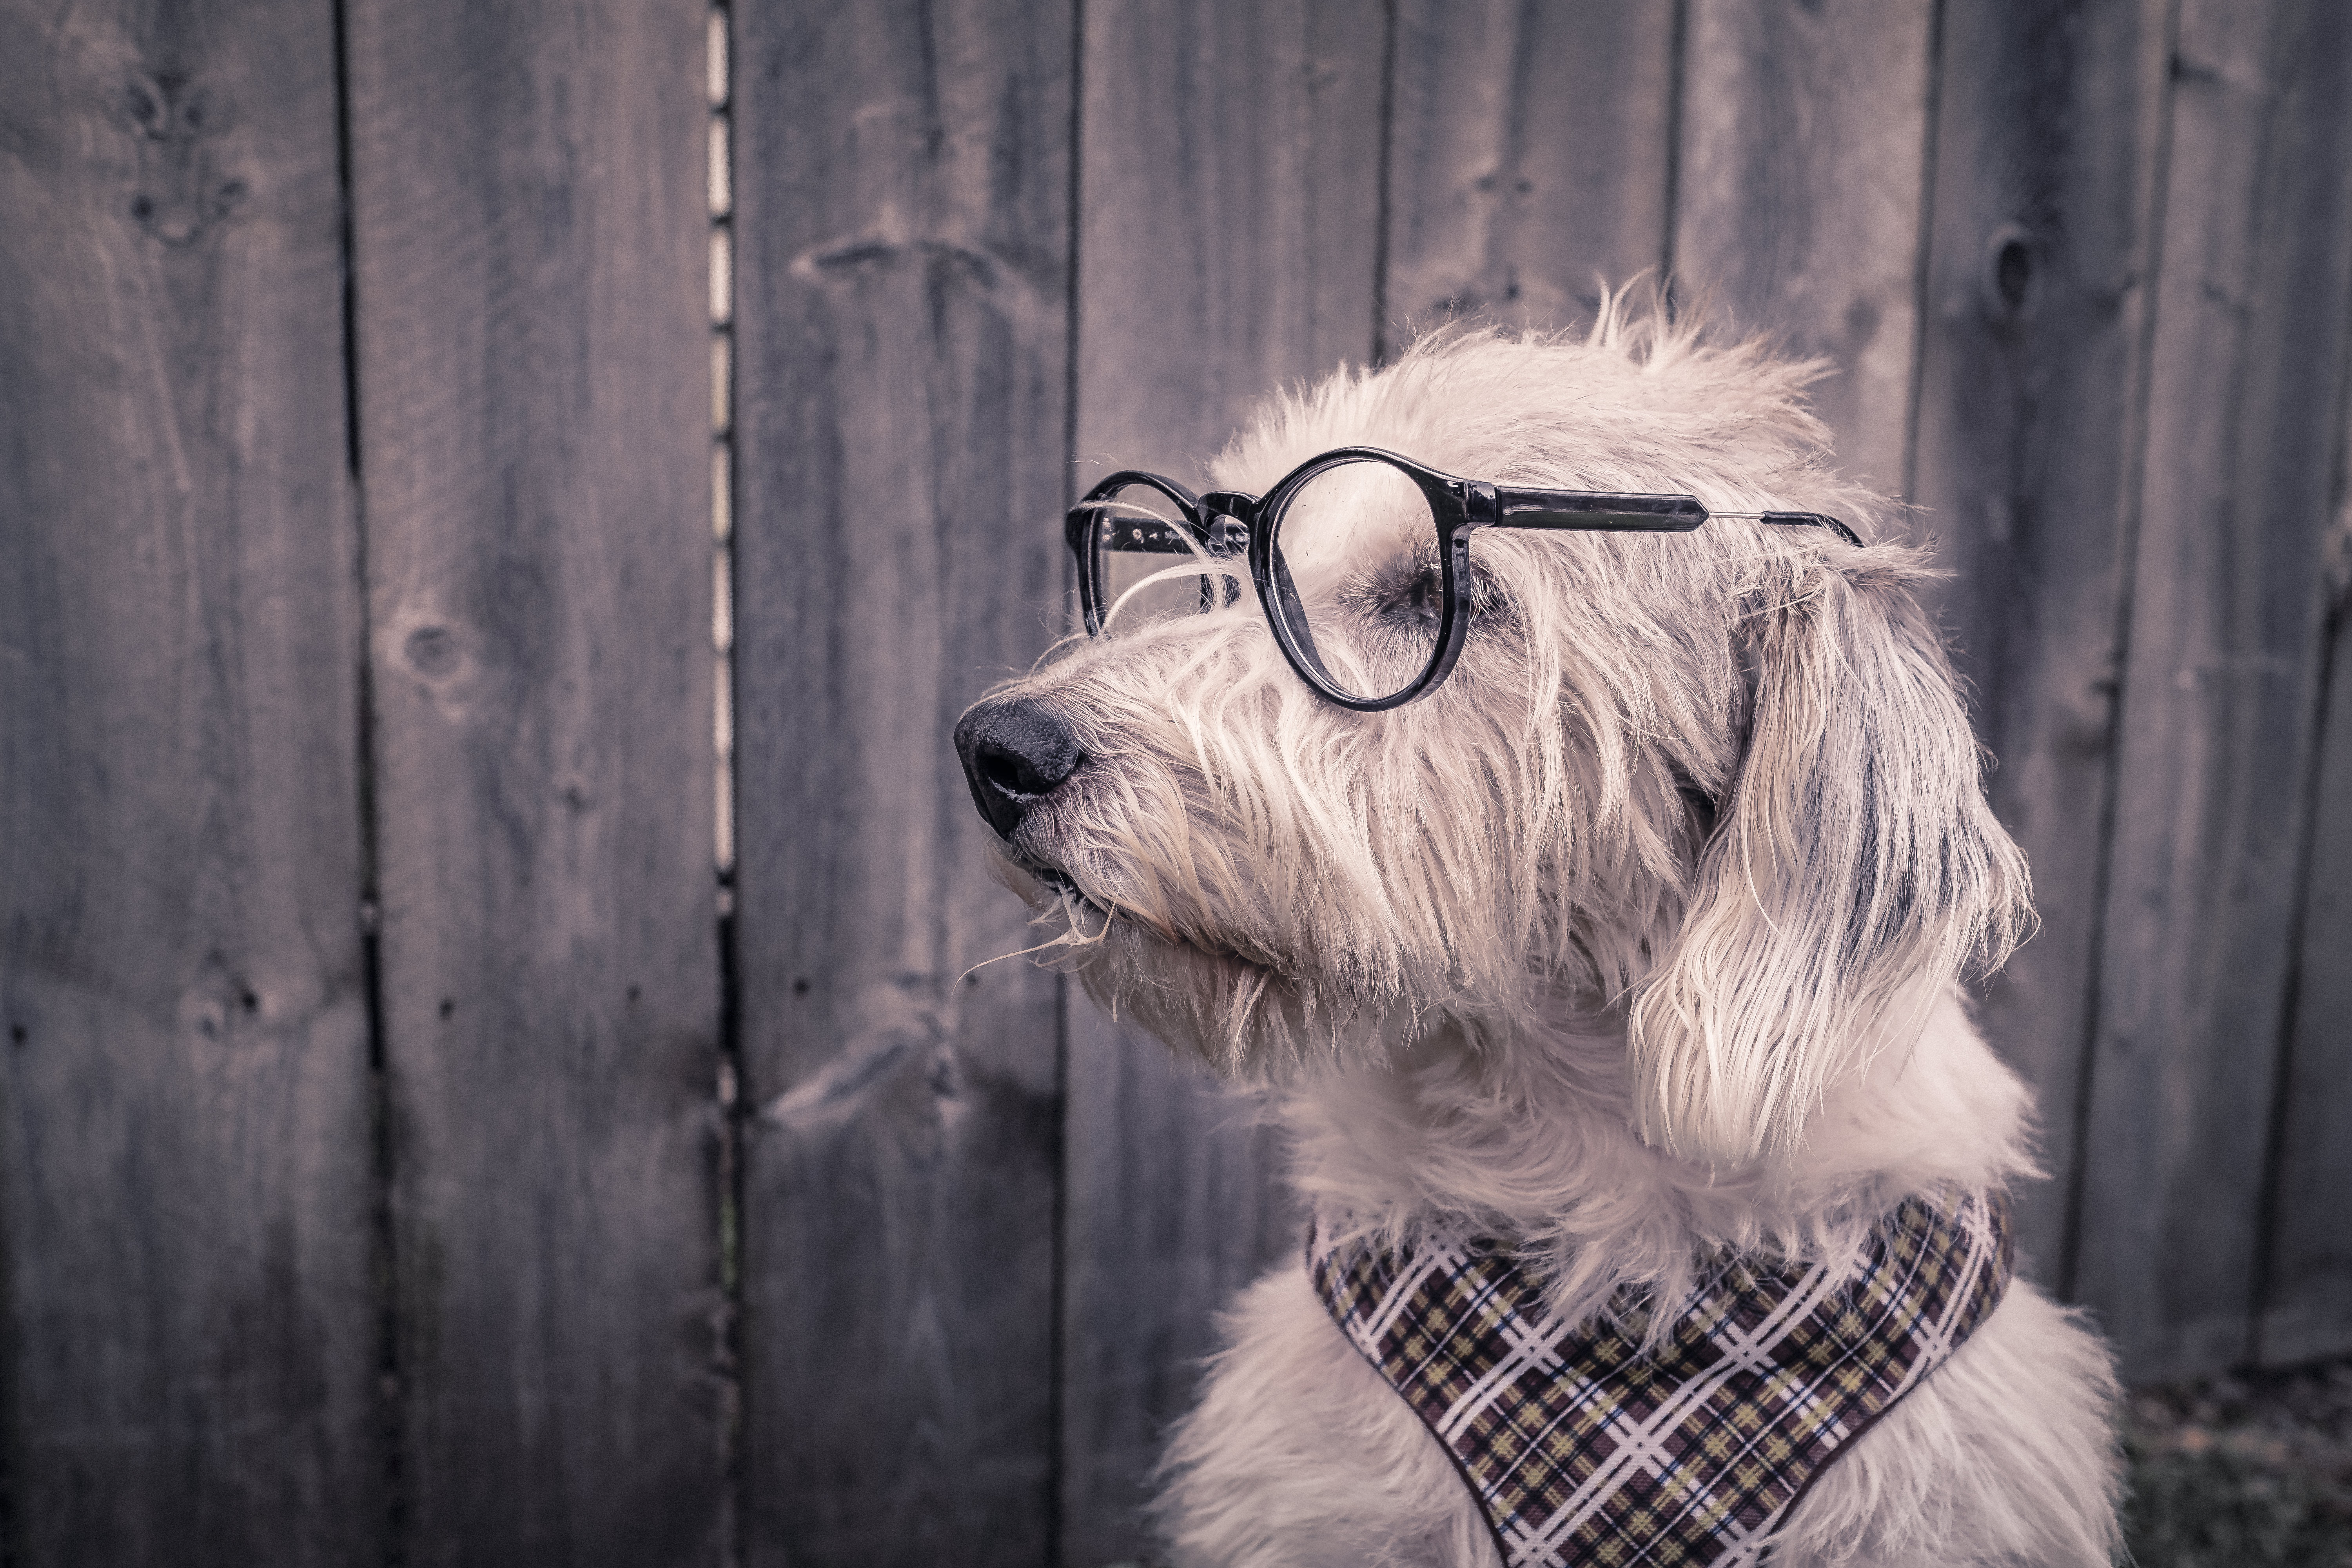 87163 download wallpaper Animals, Dog, Glasses, Spectacles, Handkerchief, Kerchief screensavers and pictures for free